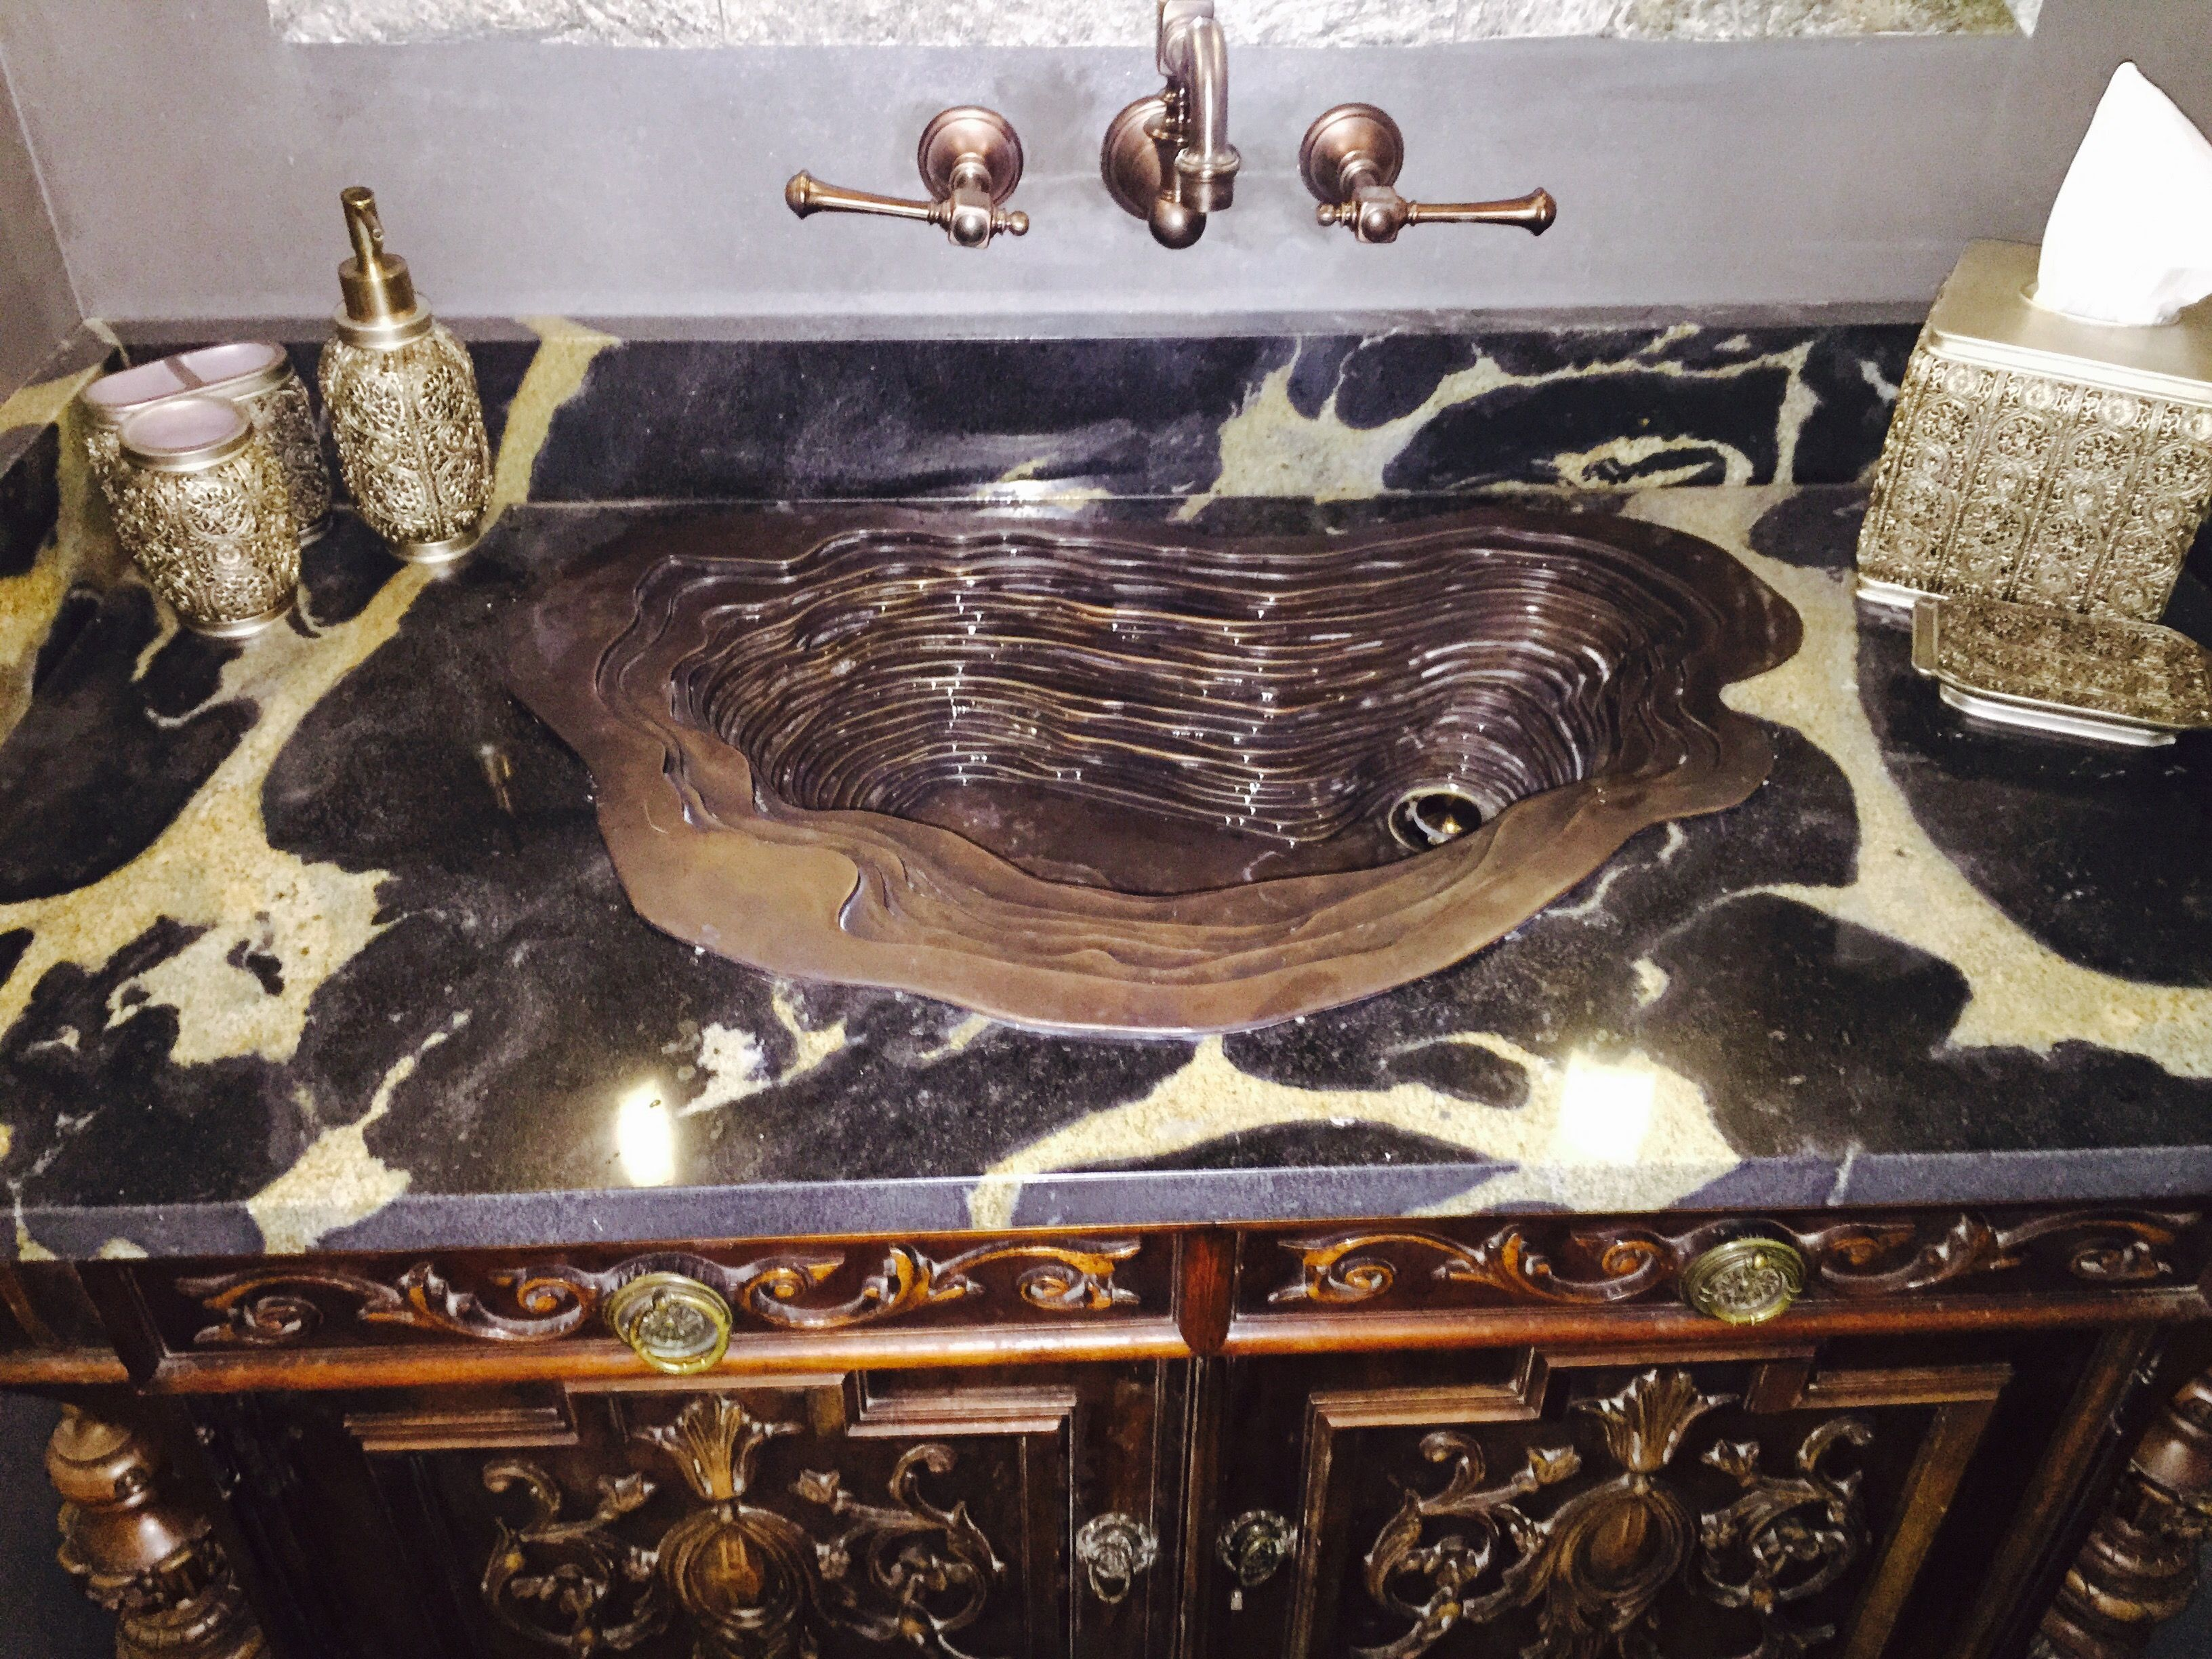 Bathroom Sinks Amazon 23 best our newly remodeled castle old world bathrooms images on